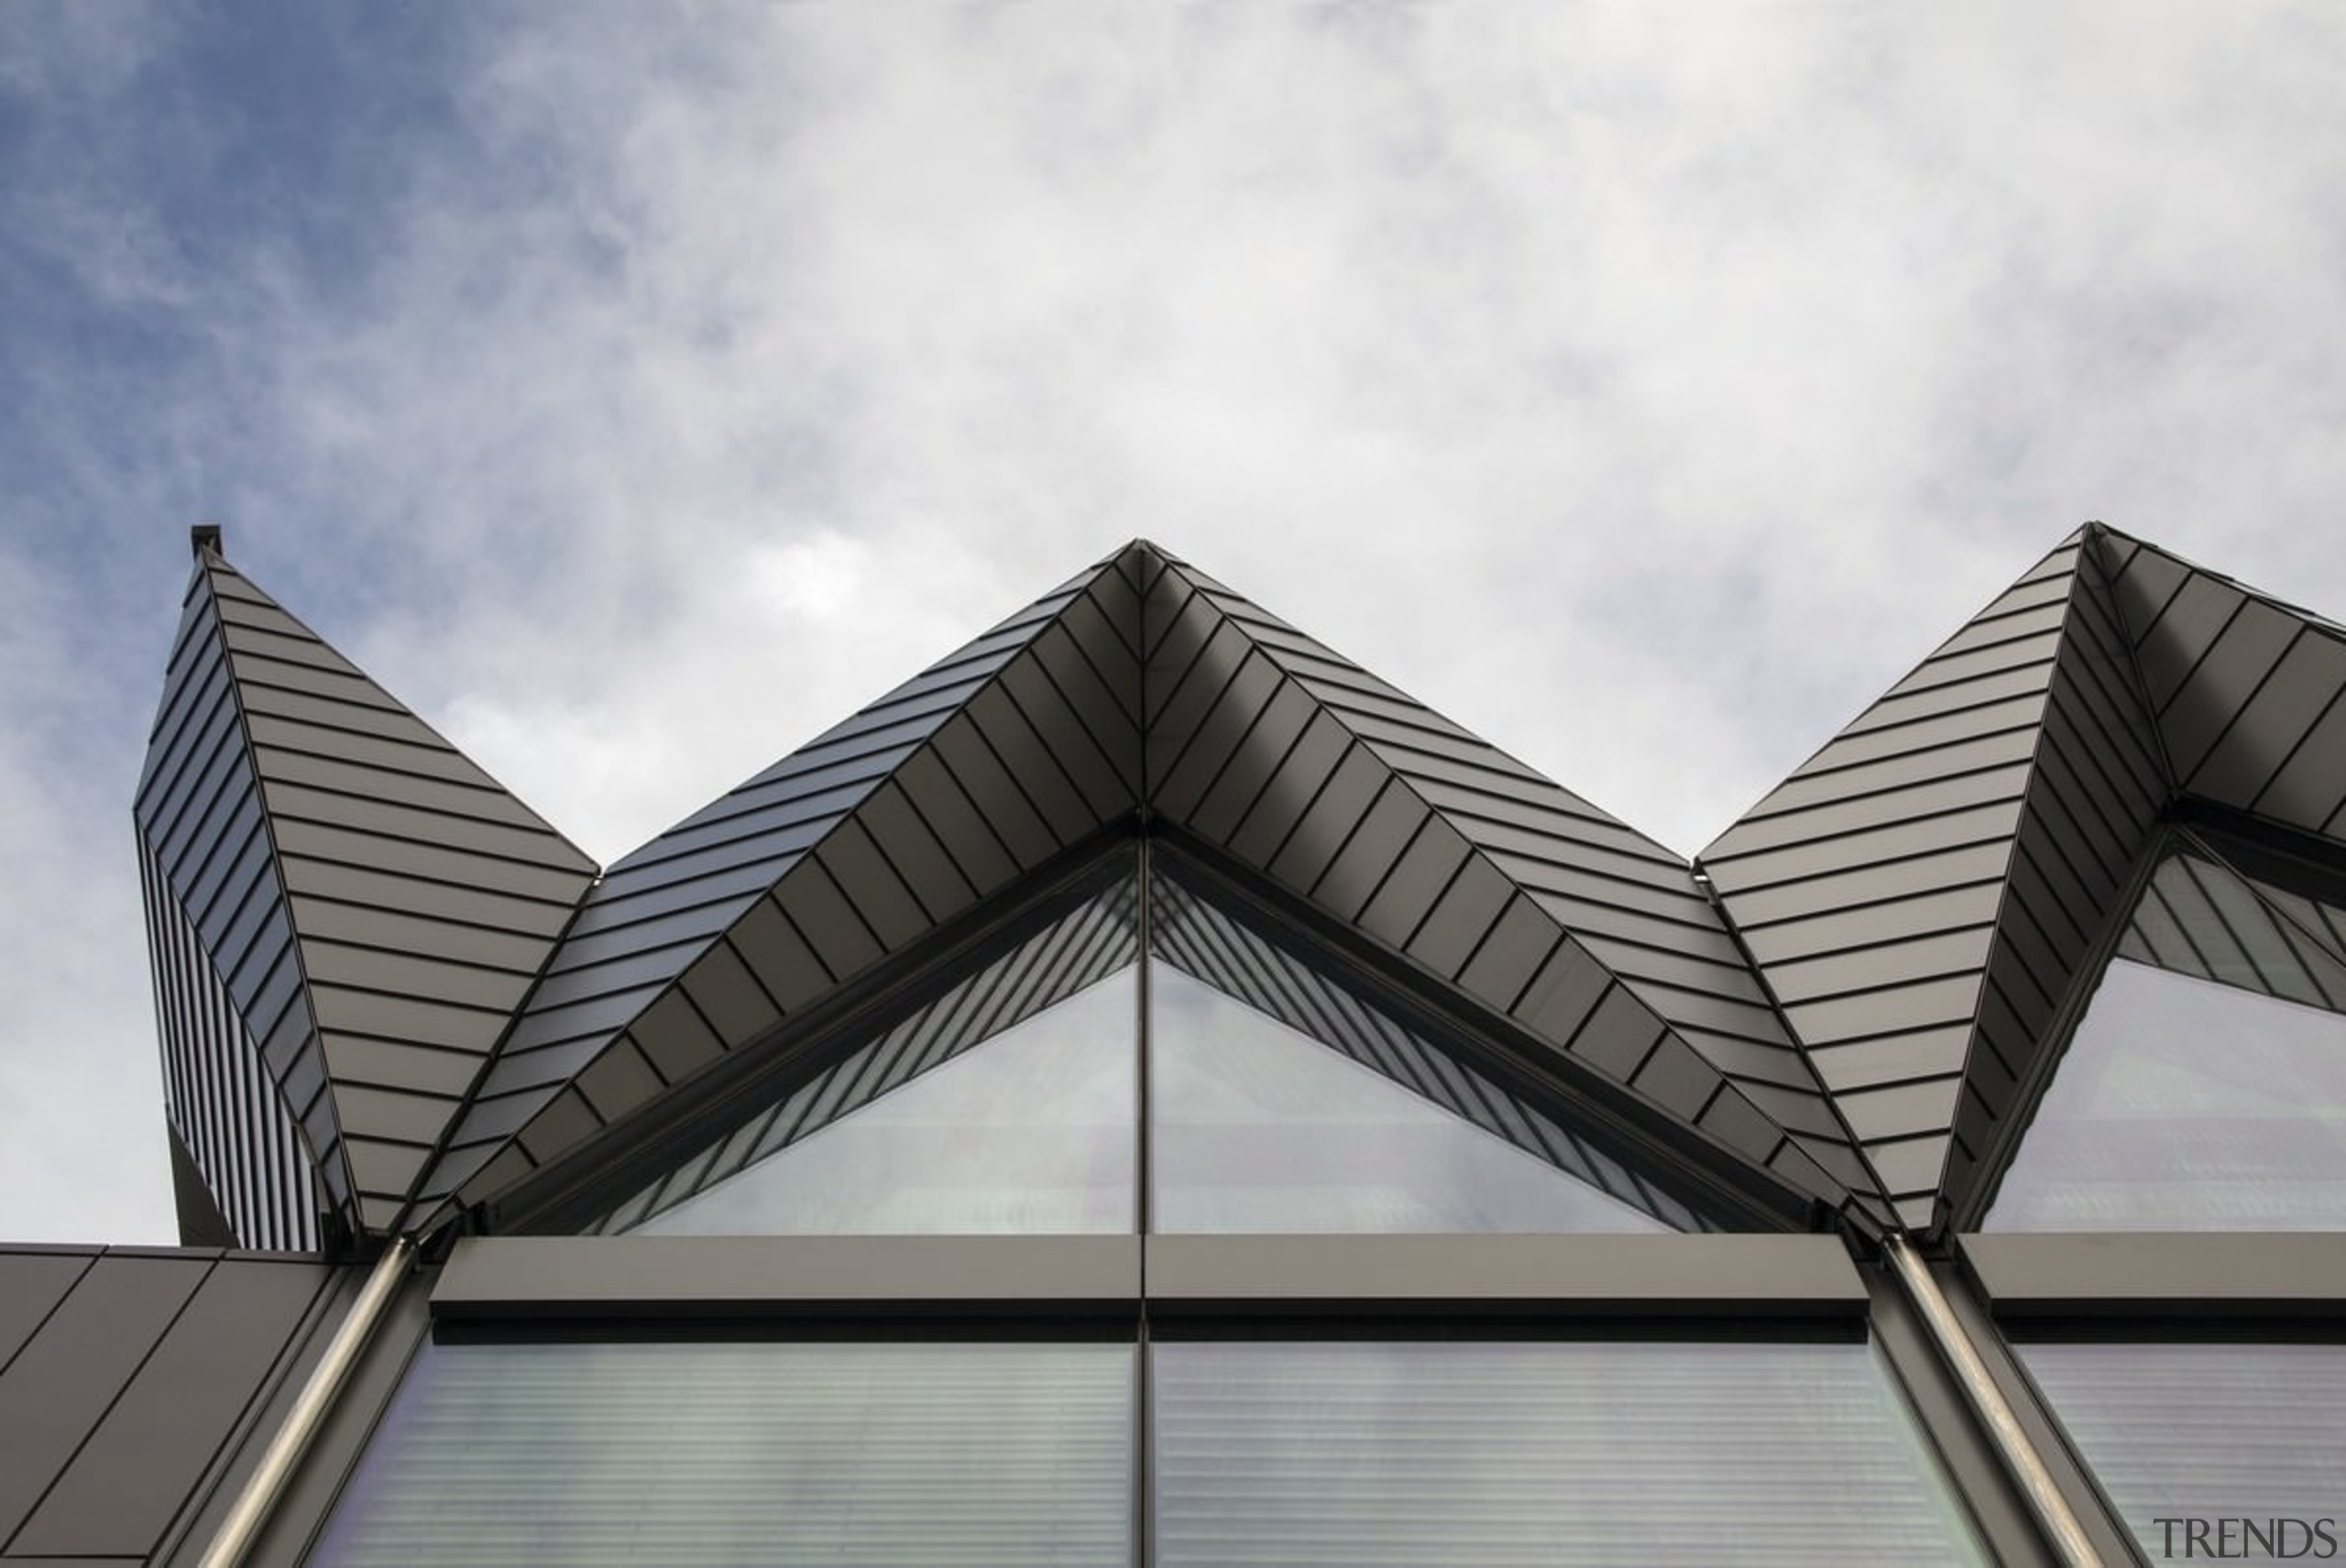 161 Sussex St – Cox Architecture - 161 angle, architecture, building, commercial building, corporate headquarters, daylighting, daytime, facade, line, roof, sky, structure, symmetry, gray